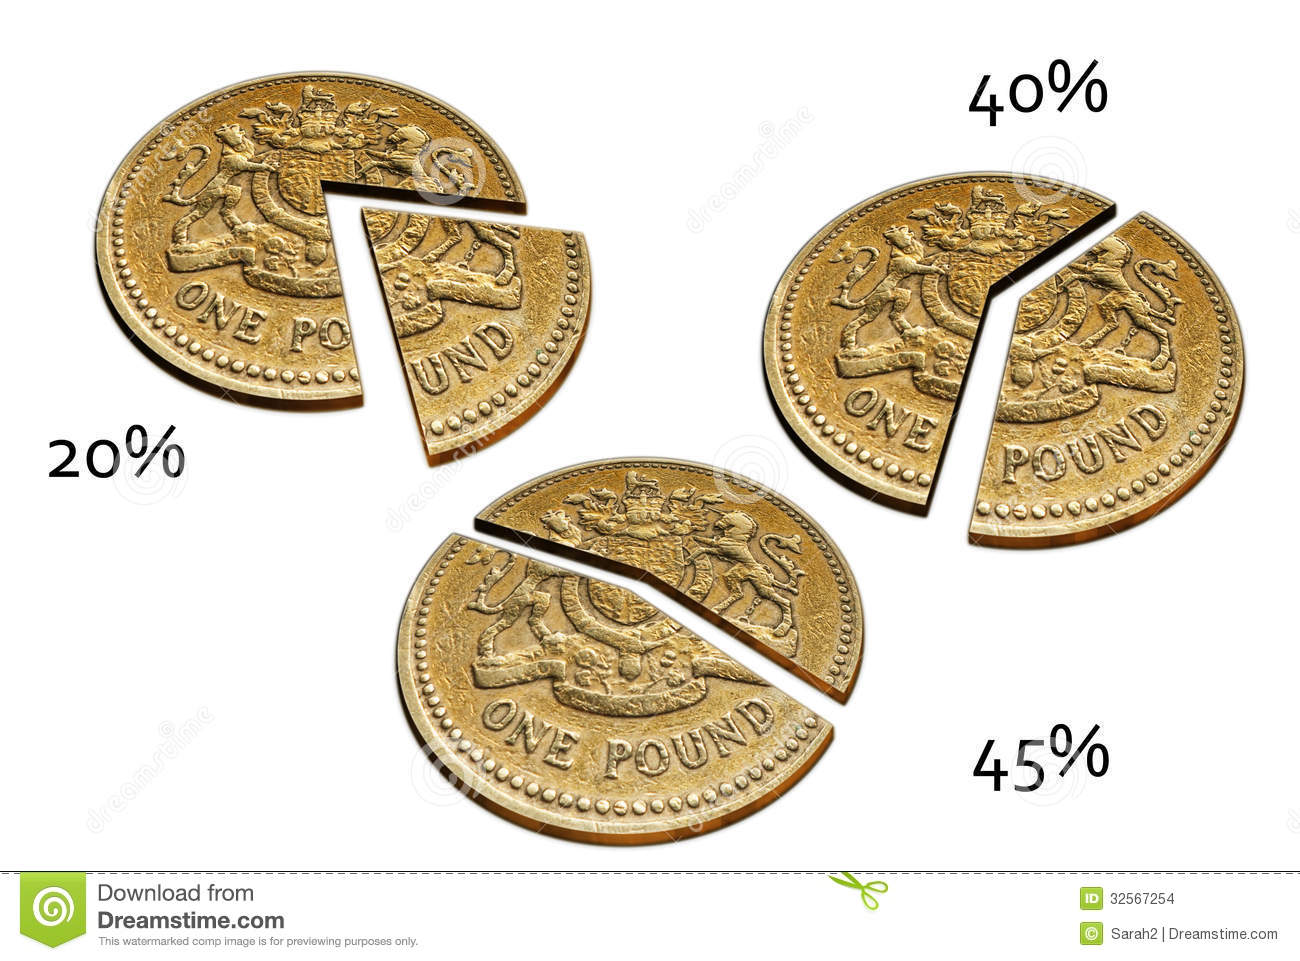 UK British income tax rates, percentages - white background